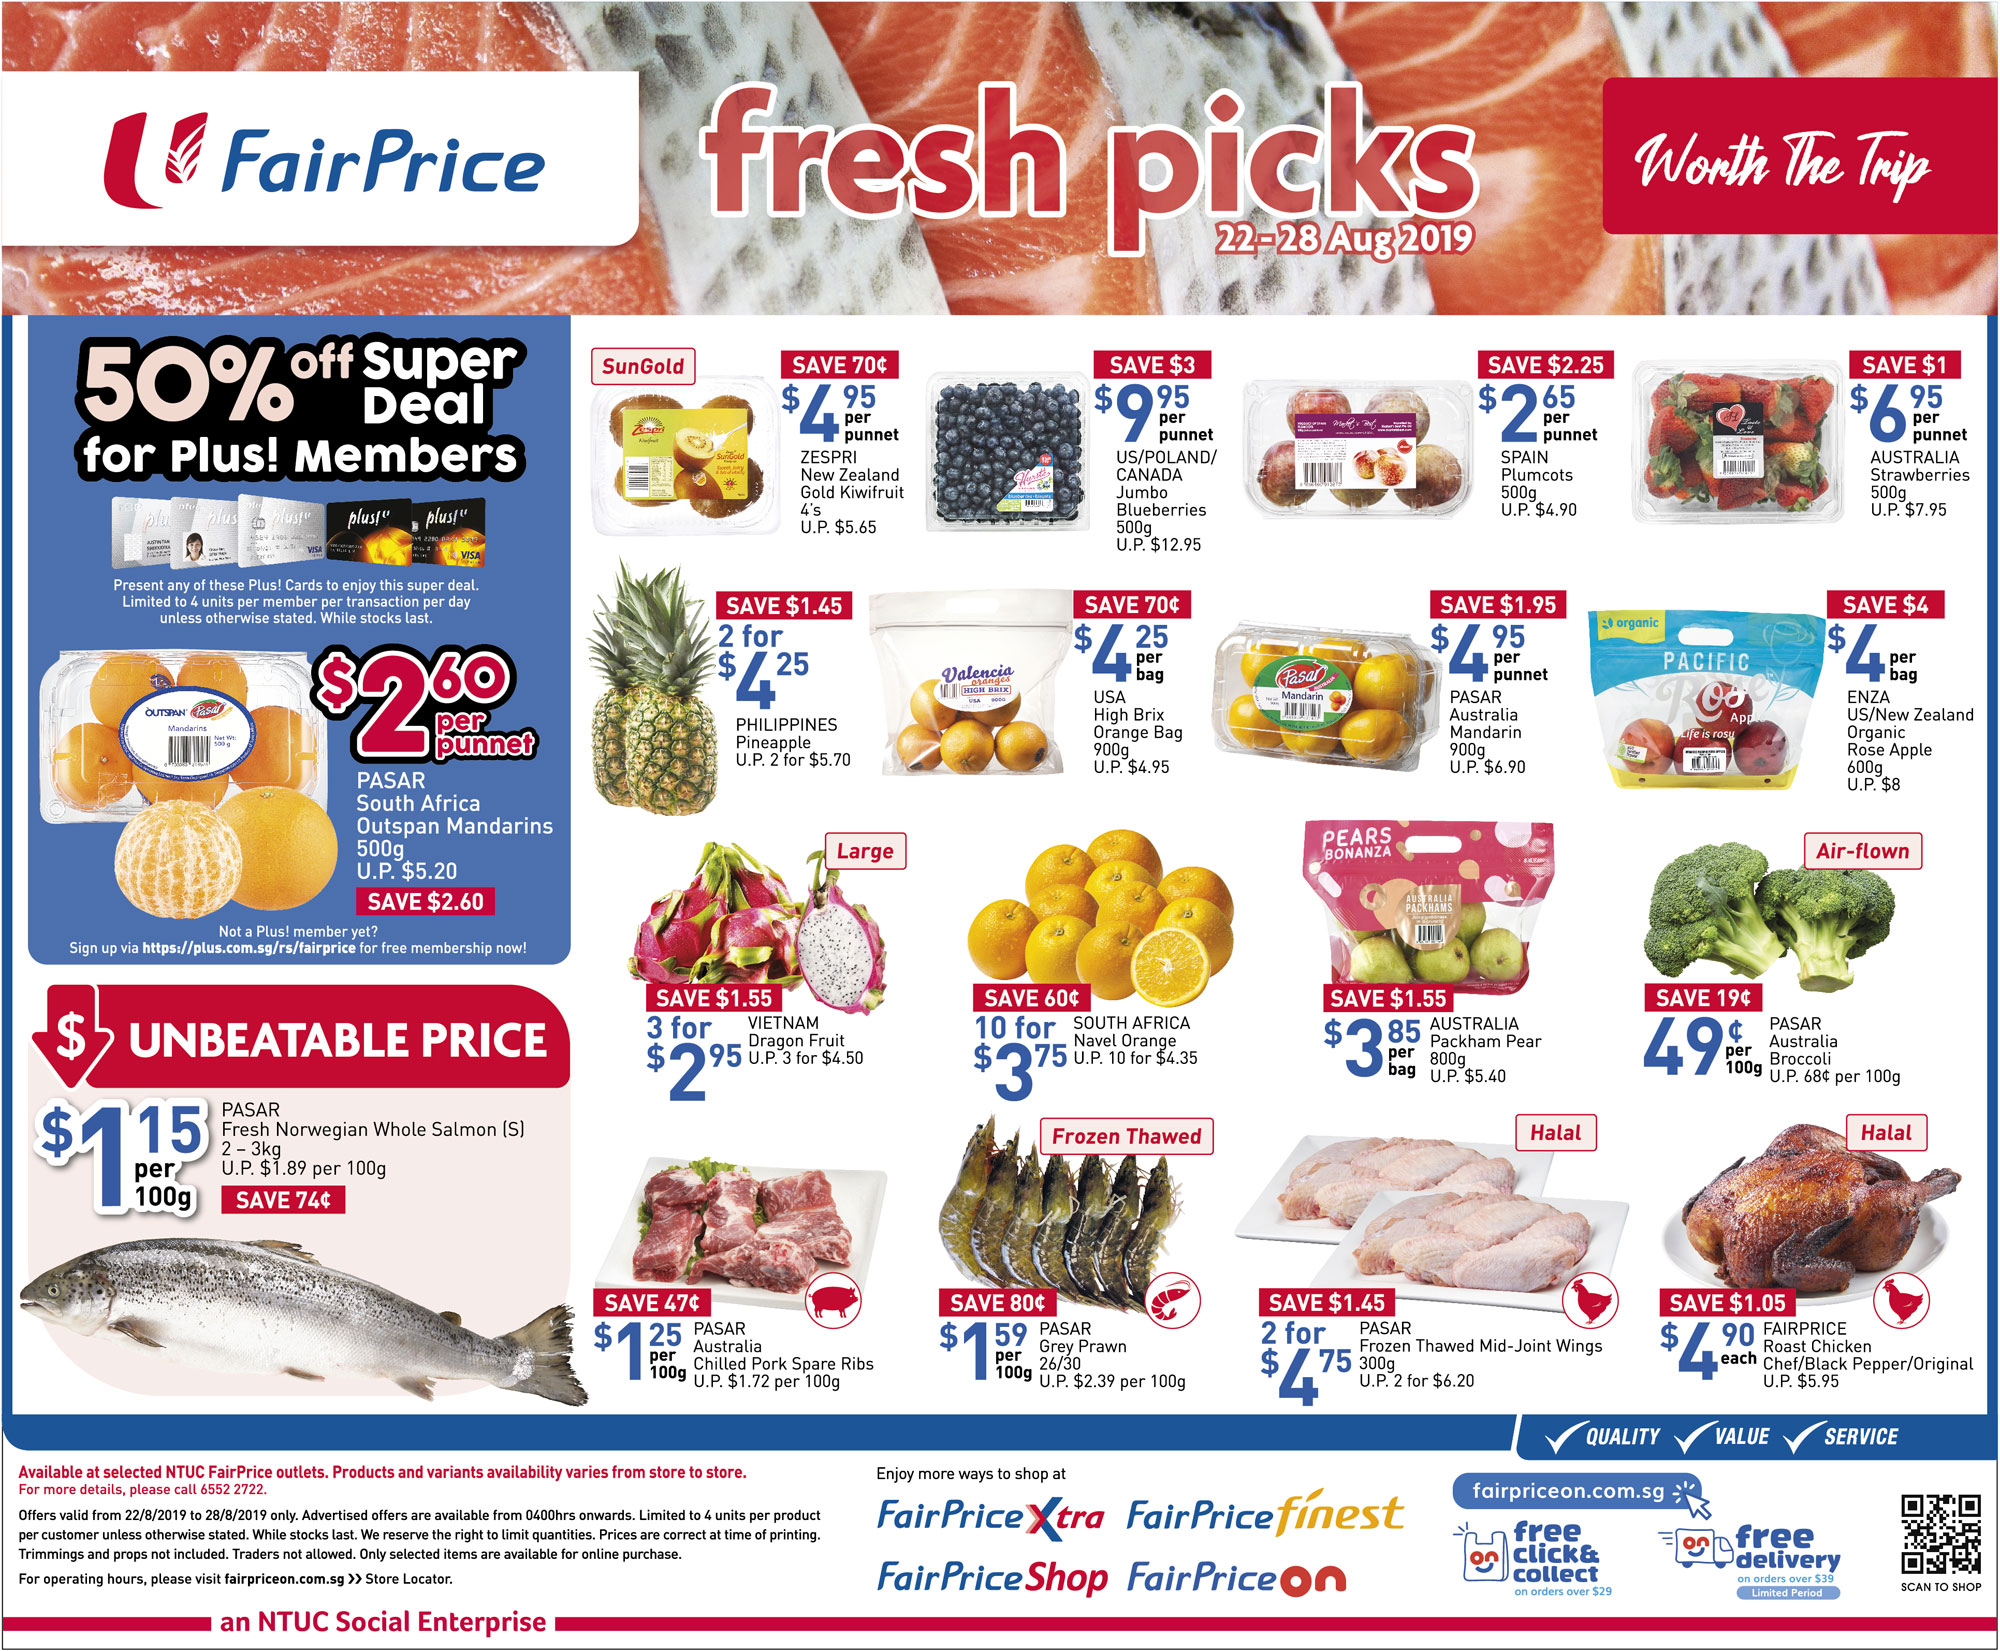 NTUC FairPrice Singapore Your Weekly Saver Promotion 22-28 Aug 2019 | Why Not Deals 2 & Promotions